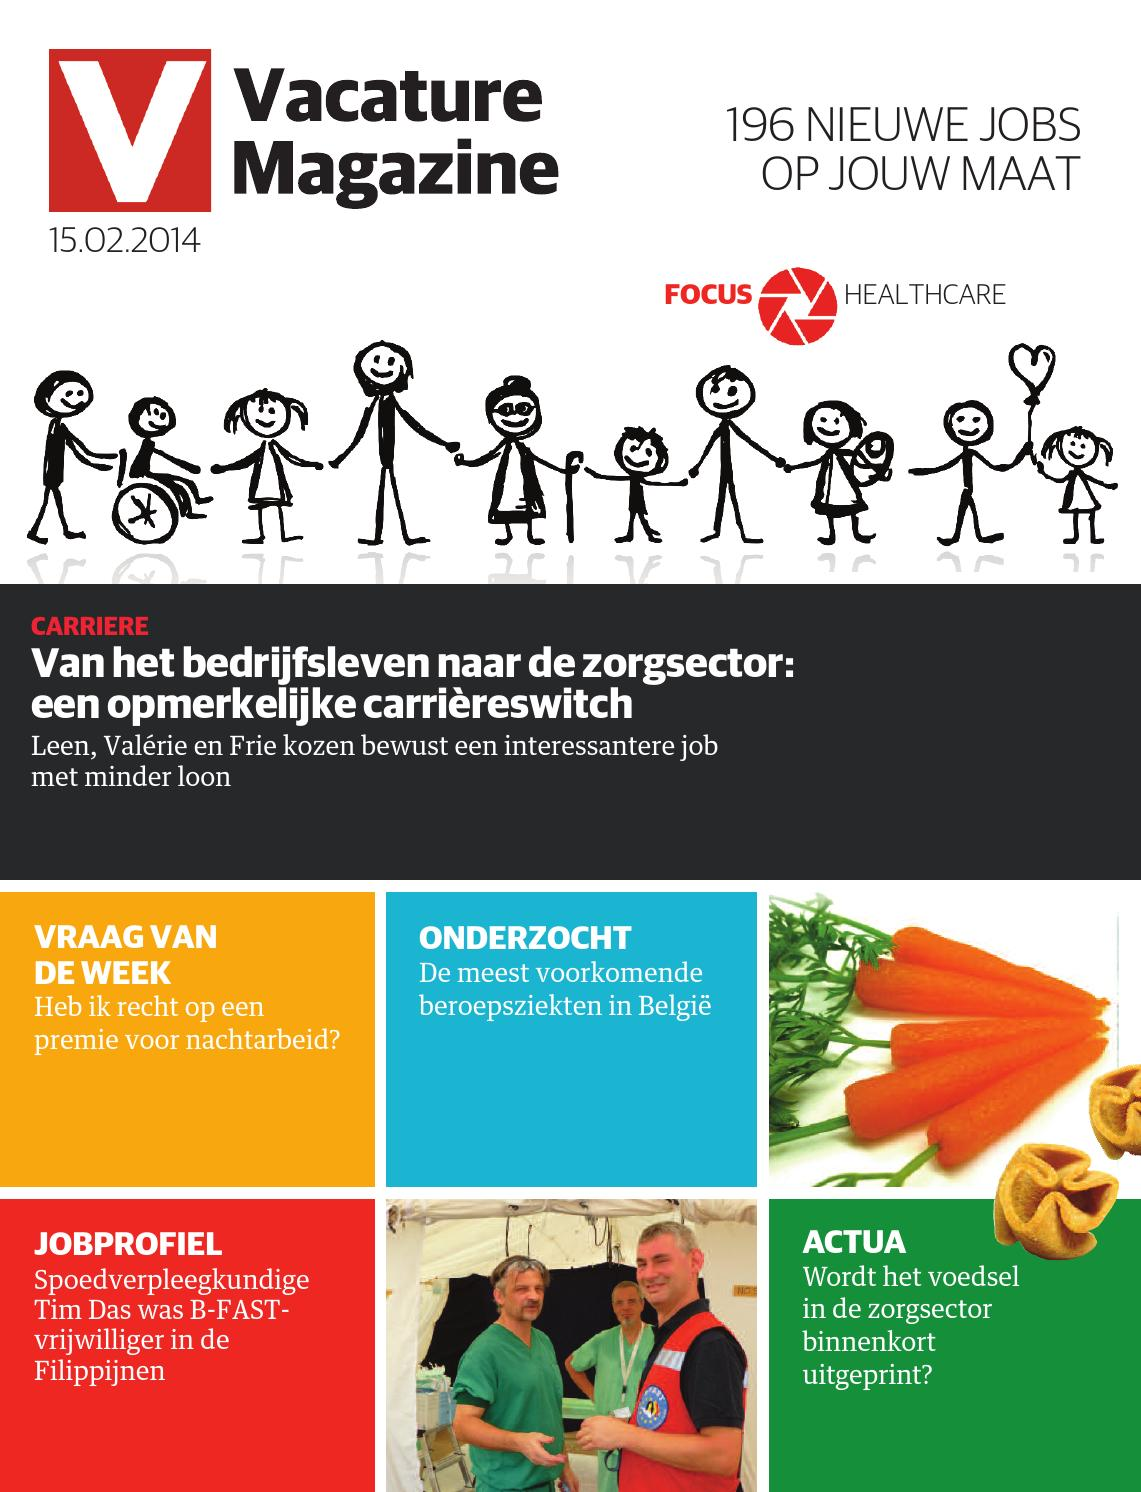 vacature magazine 15 02 2014 by jobs  u0026 careers cv